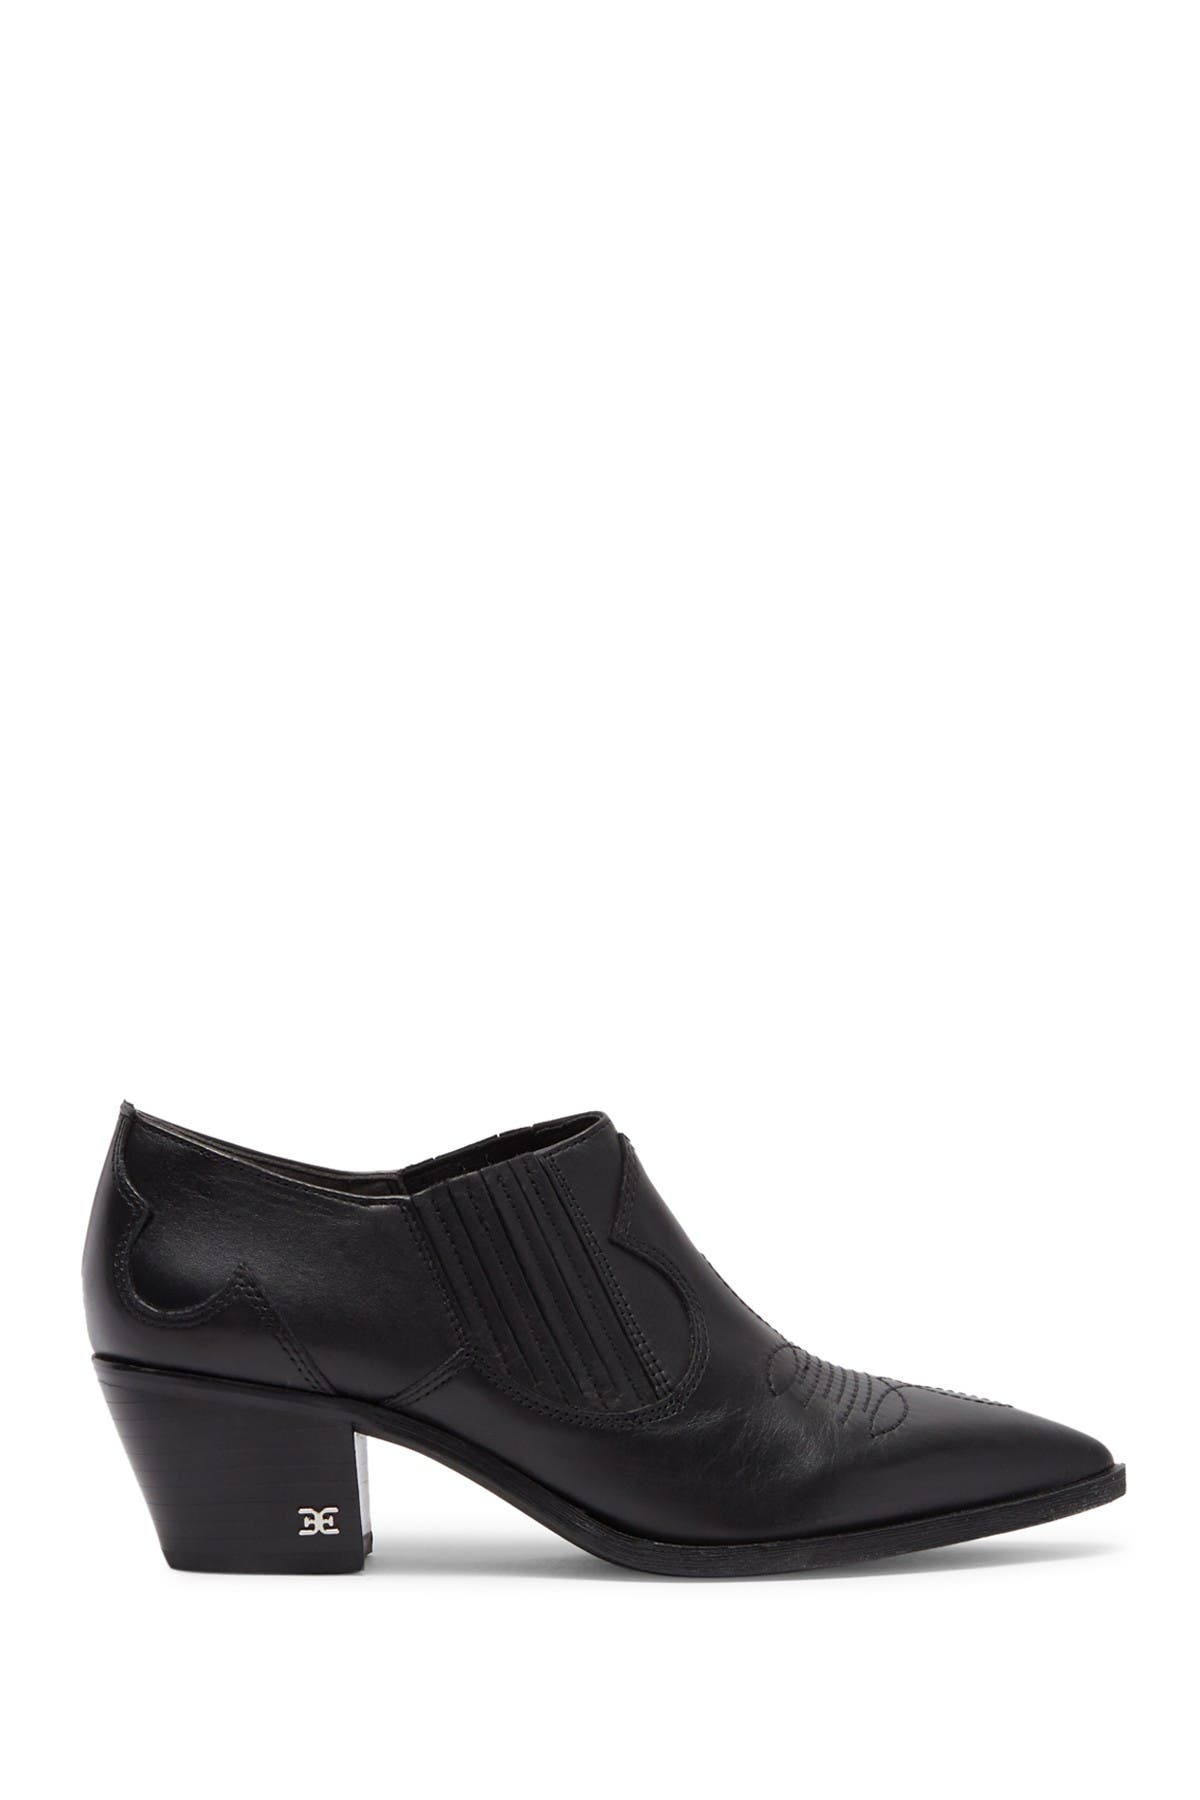 Image of Sam Edelman Roy Leather Western Ankle Bootie